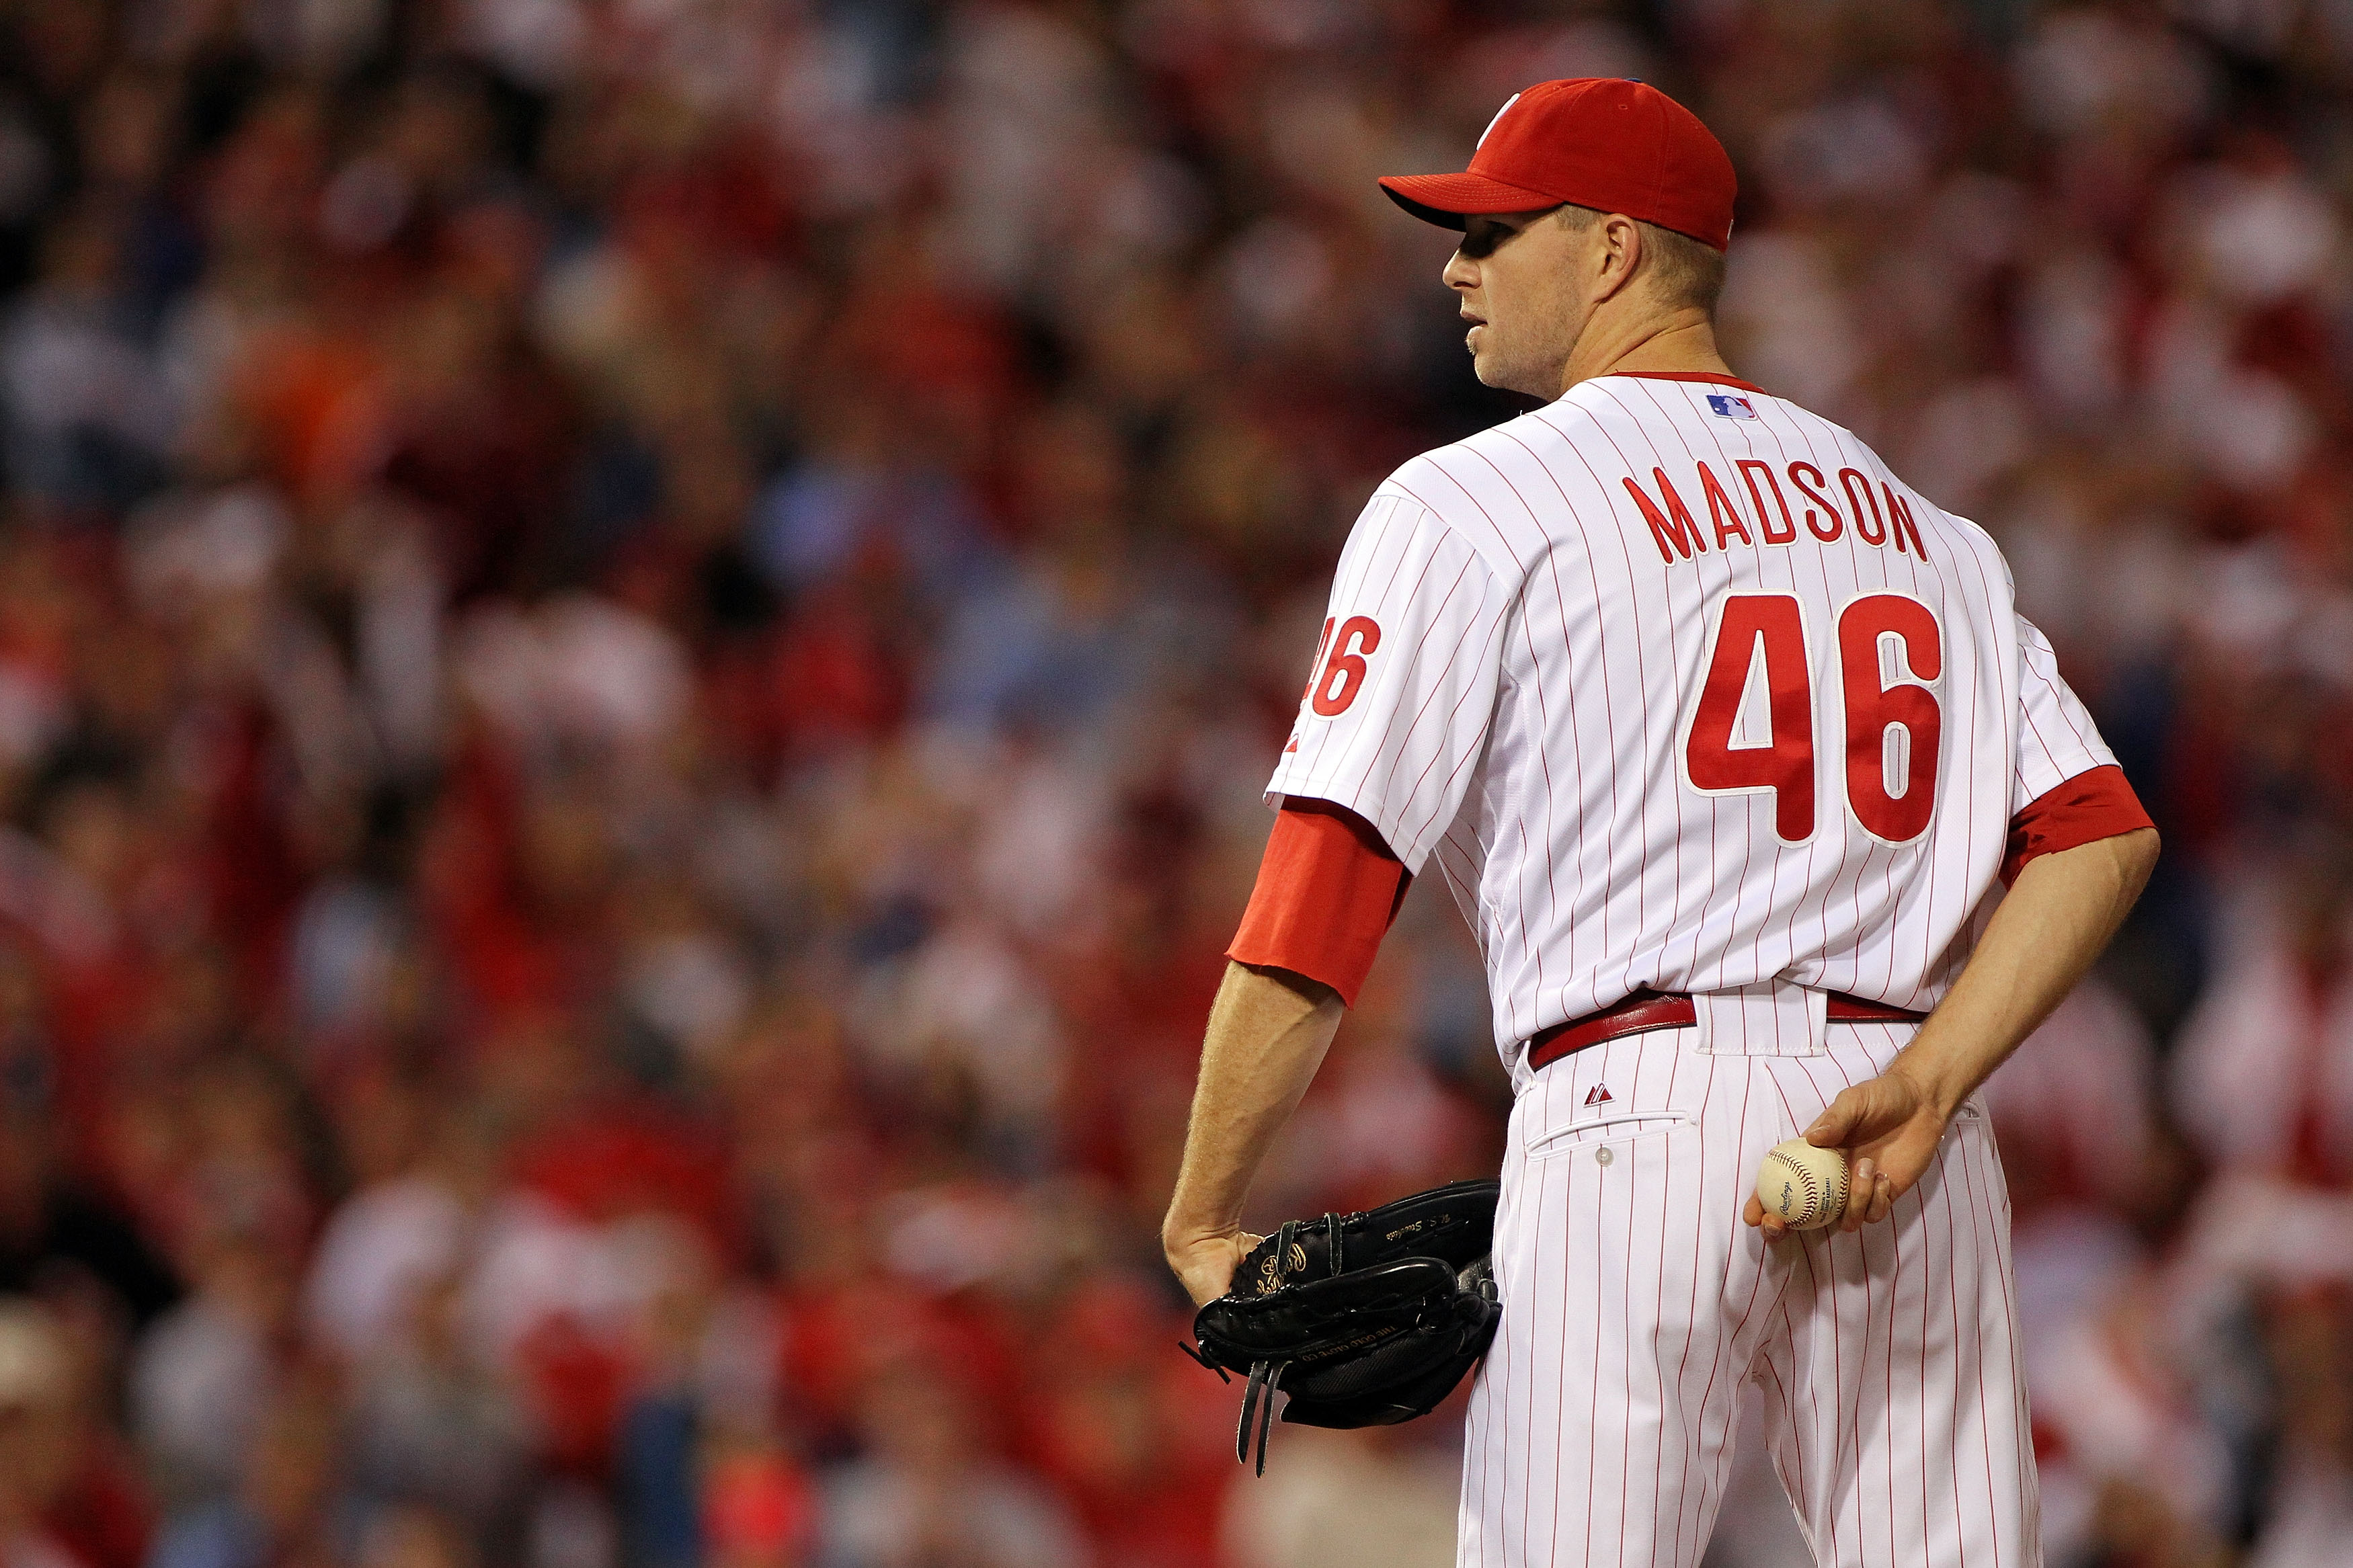 PHILADELPHIA - OCTOBER 23:  Ryan Madson #46 of the Philadelphia Phillies gets set against the San Francisco Giants in Game Six of the NLCS during the 2010 MLB Playoffs at Citizens Bank Park on October 23, 2010 in Philadelphia, Pennsylvania.  (Photo by Dou